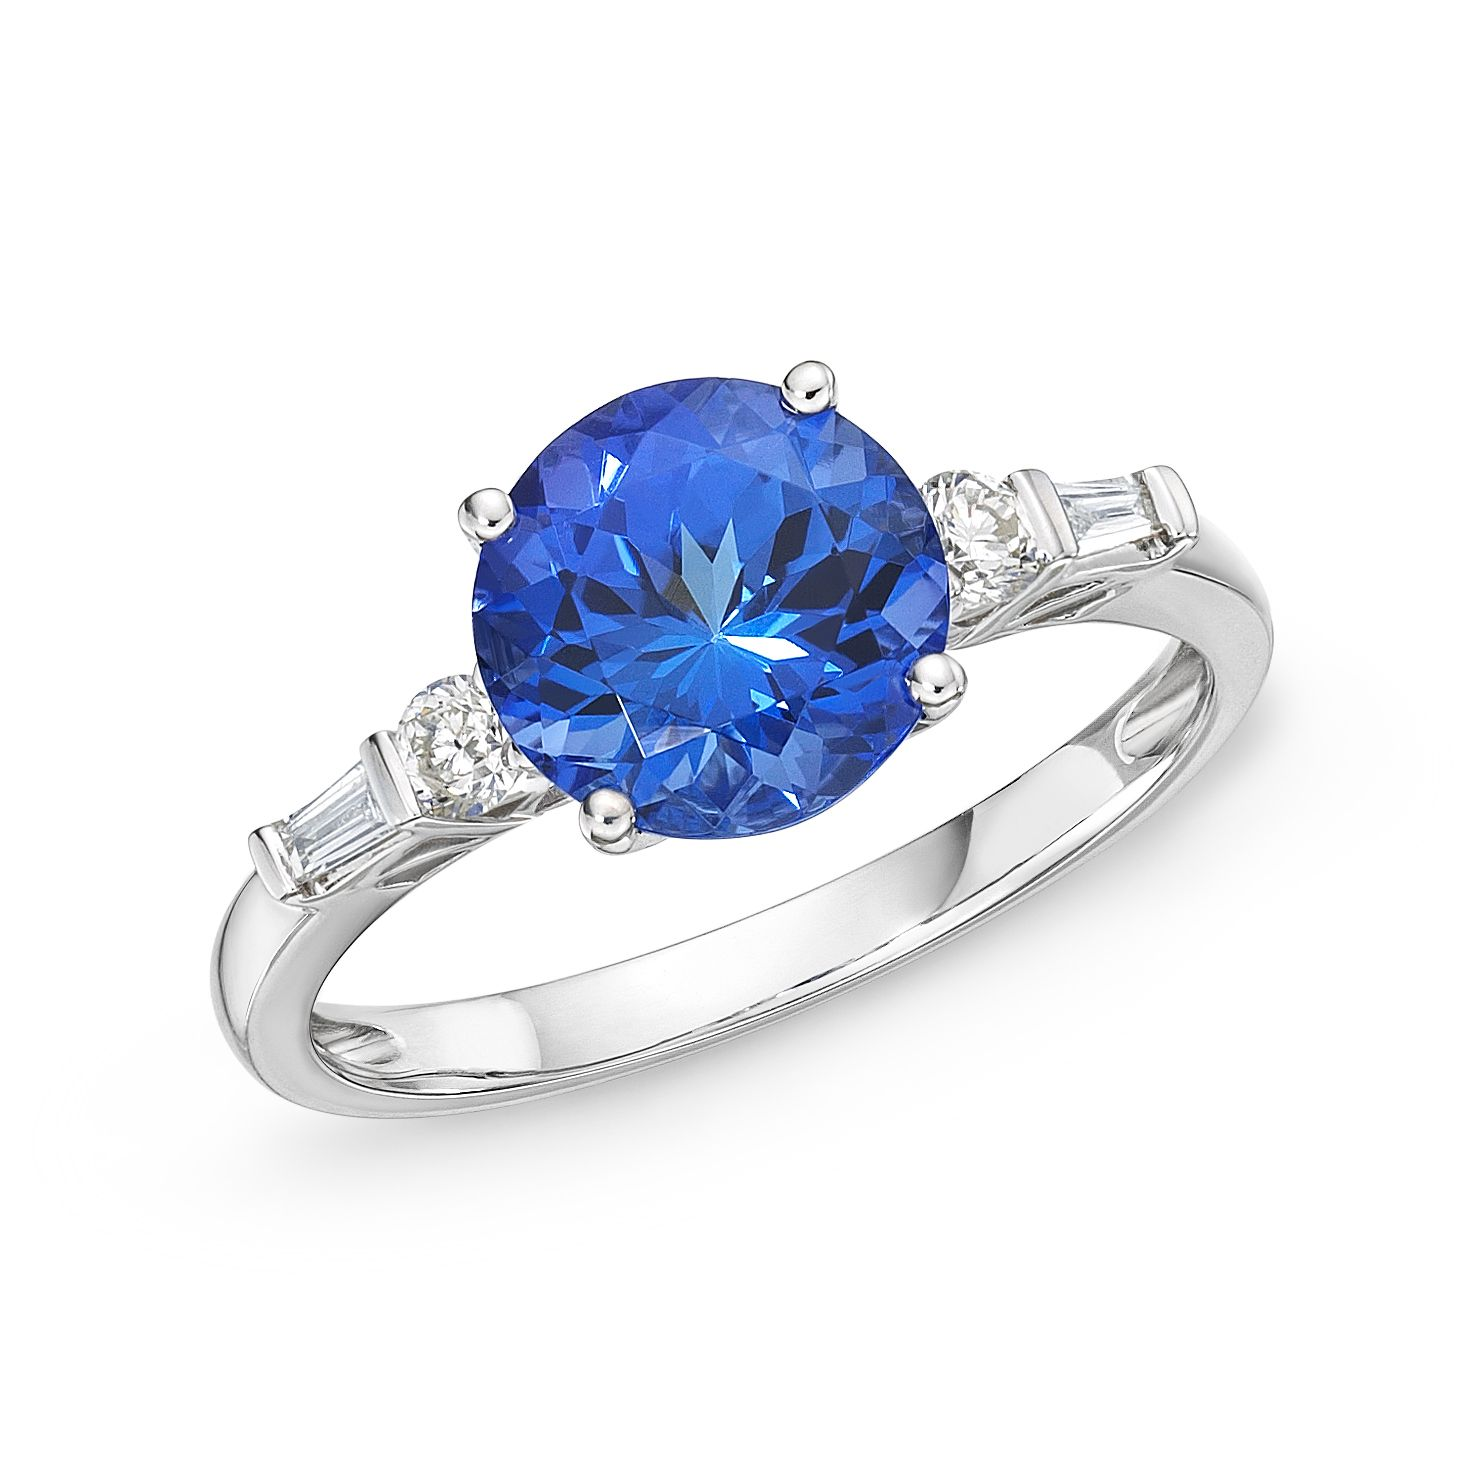 mv kay tw diamonds le zm hover zoom vian tanzanite gold vanilla diamond kaystore ring ct to en